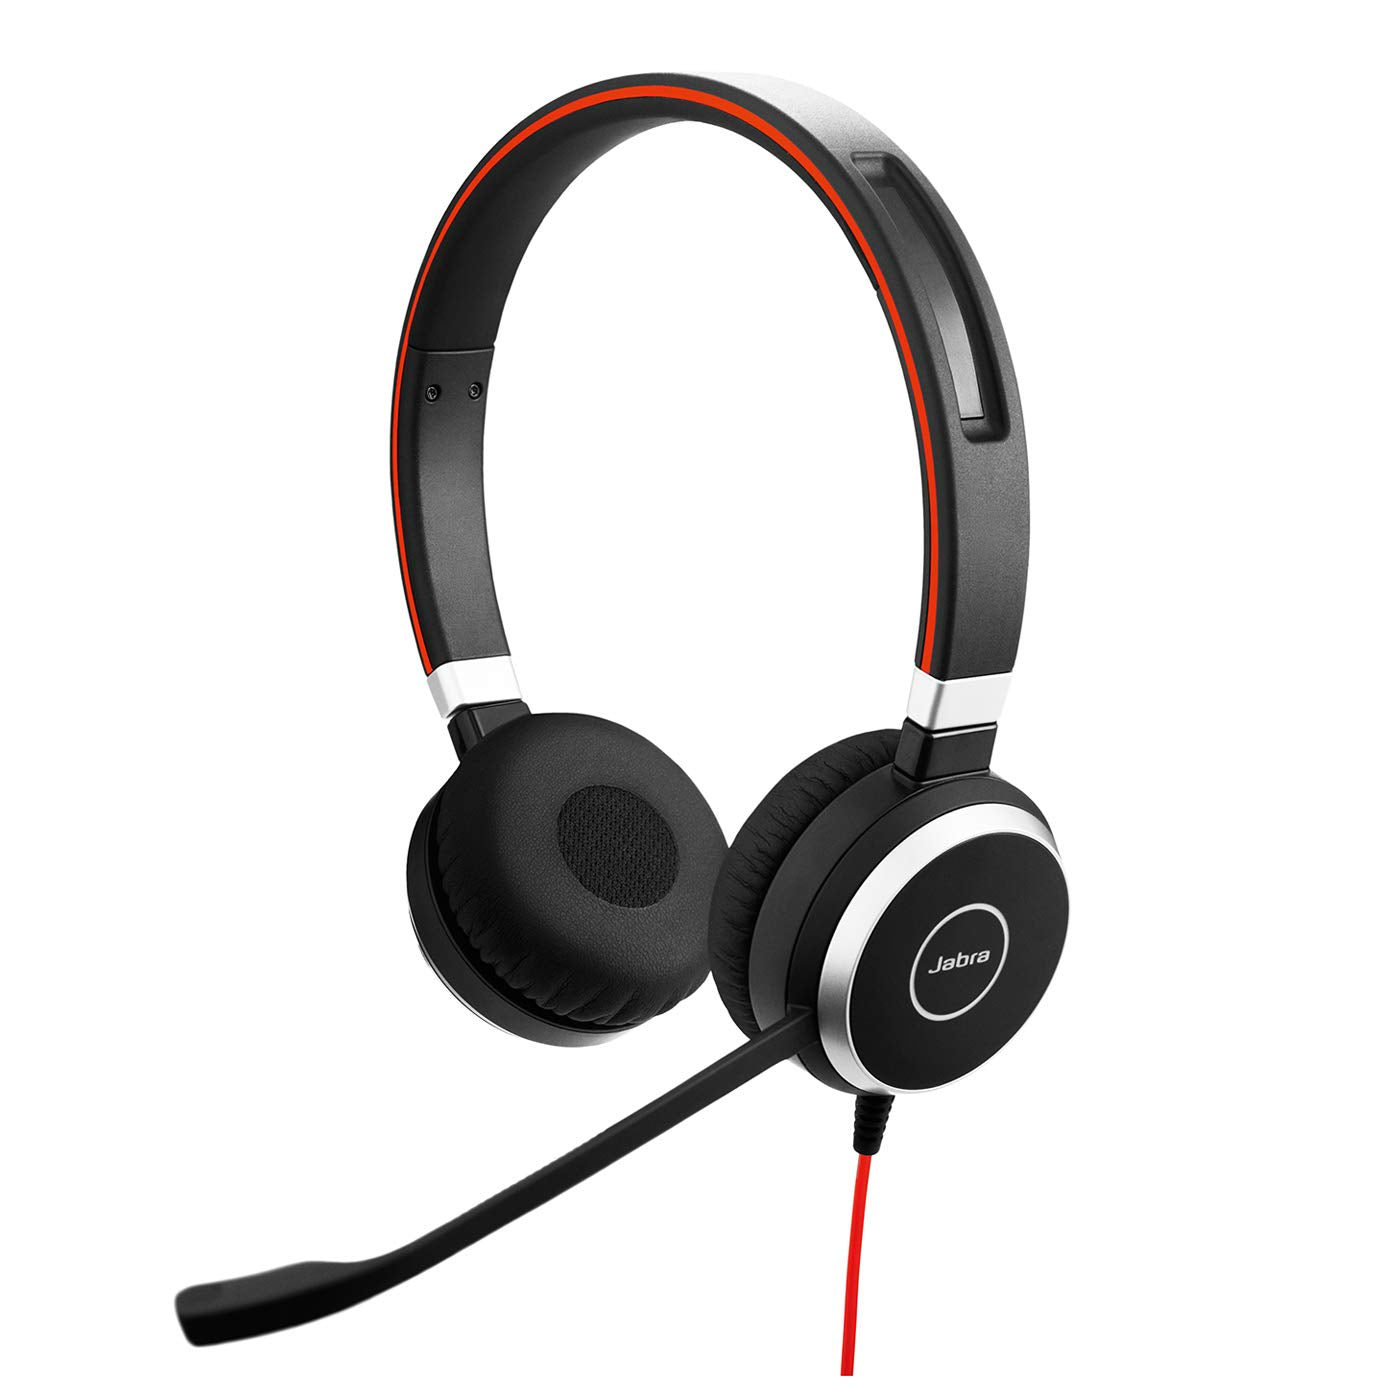 Jabra Evolve 40 UC Stereo Headset – Headphones for VoIP Softphone